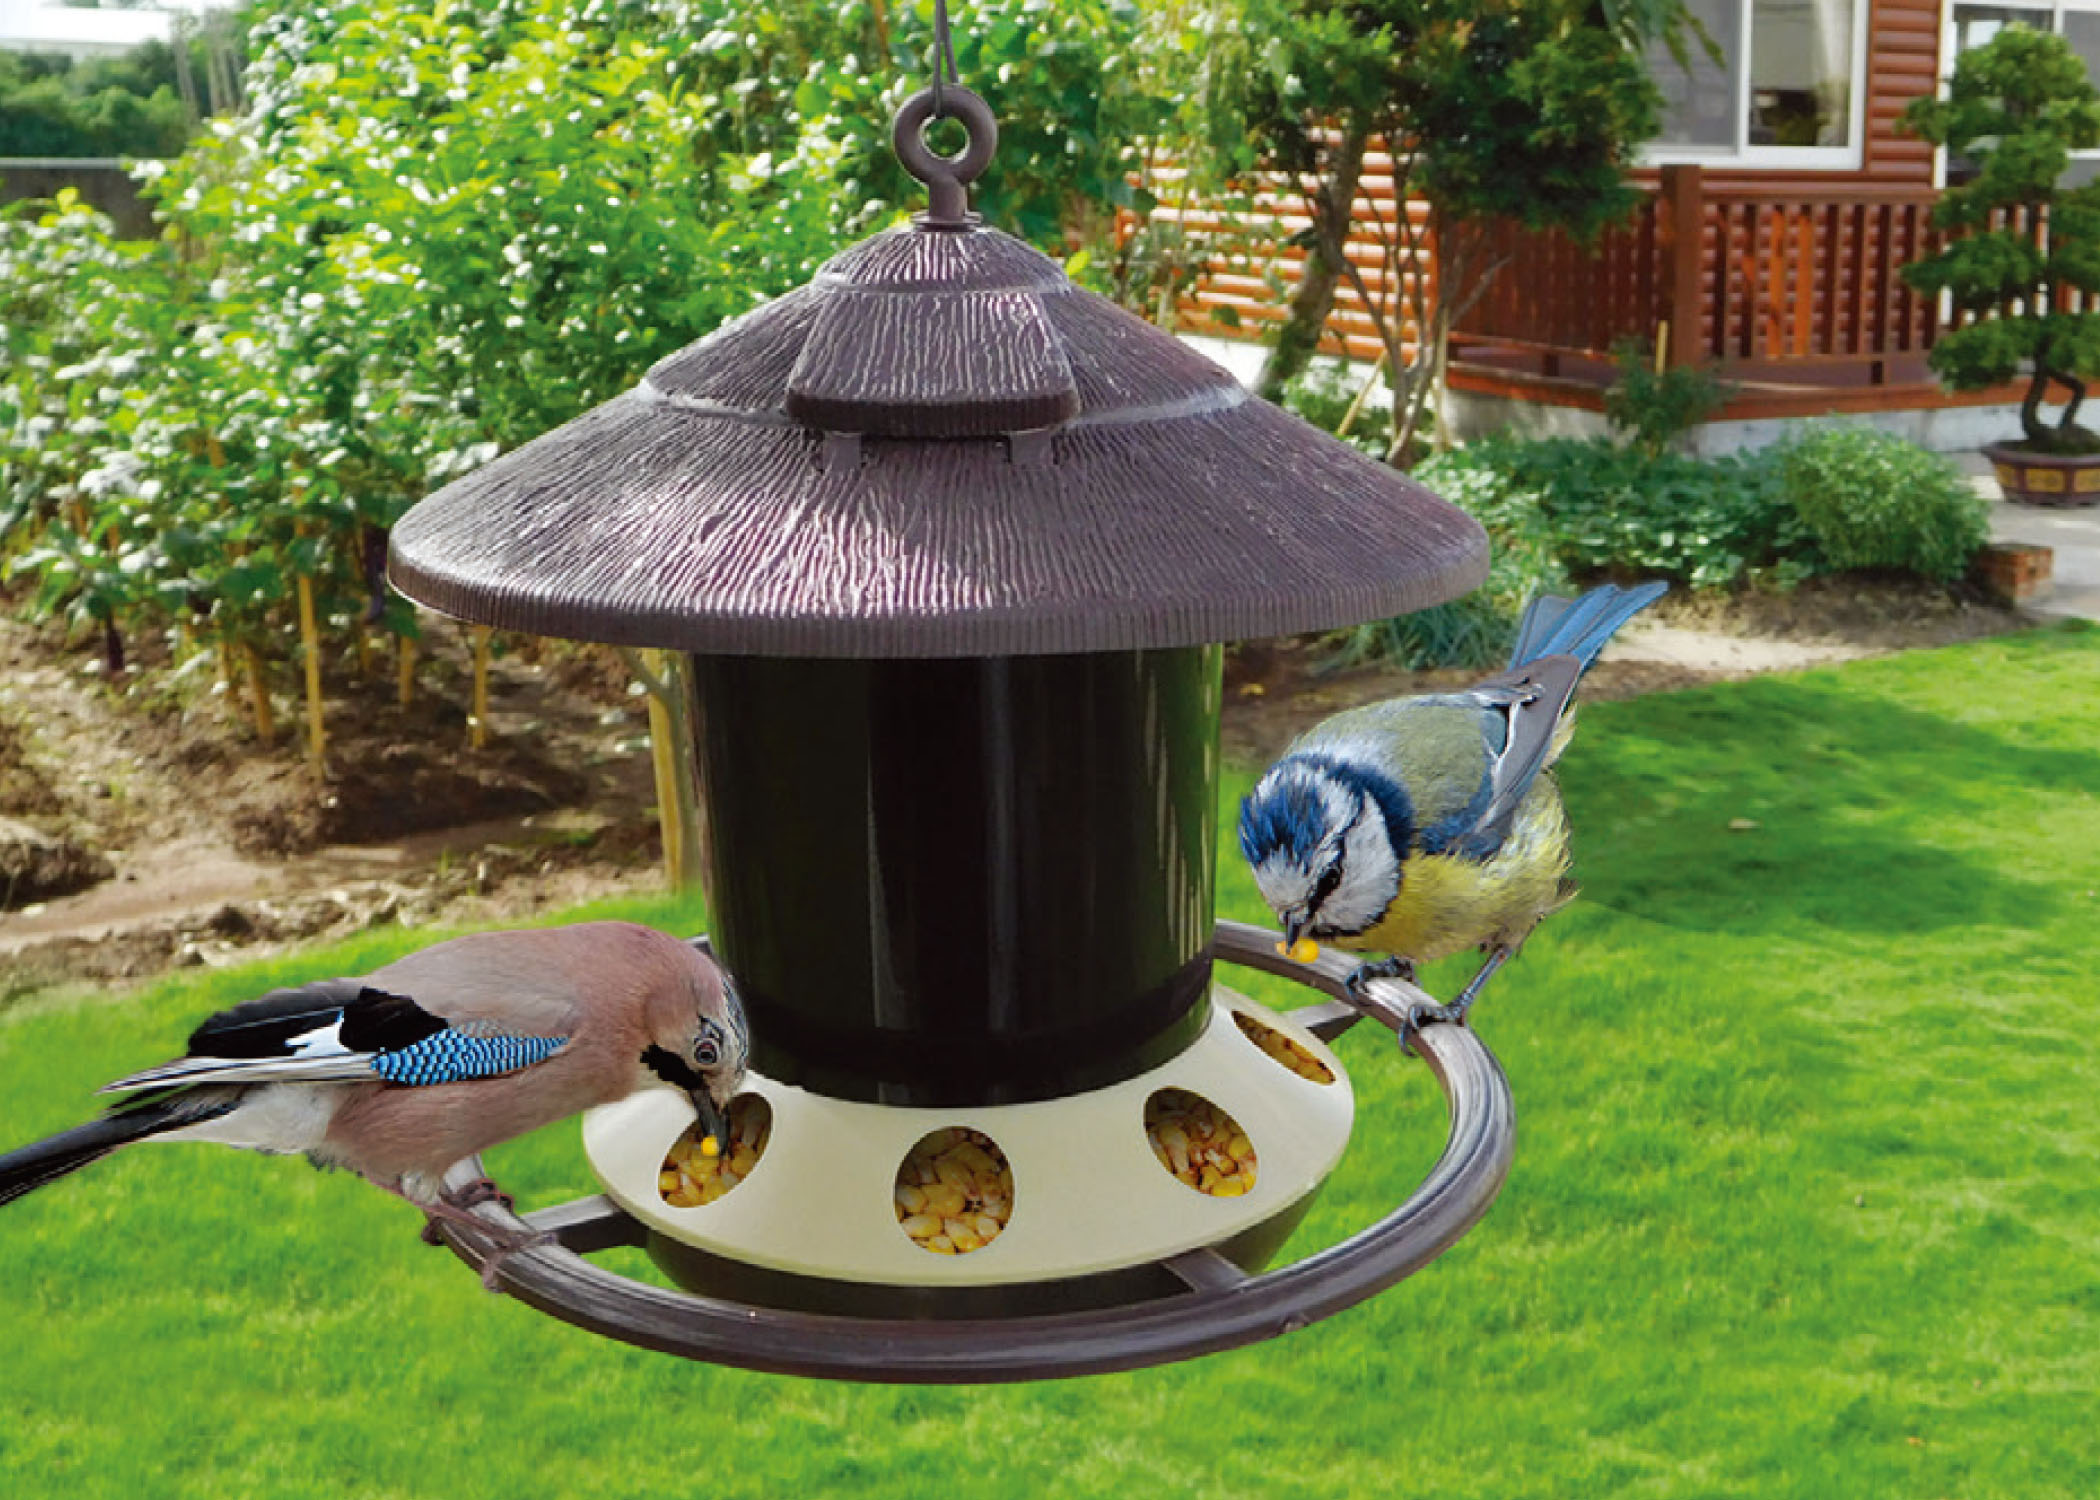 Zenport Bird Feeder D-450 1.23-lb Capacity